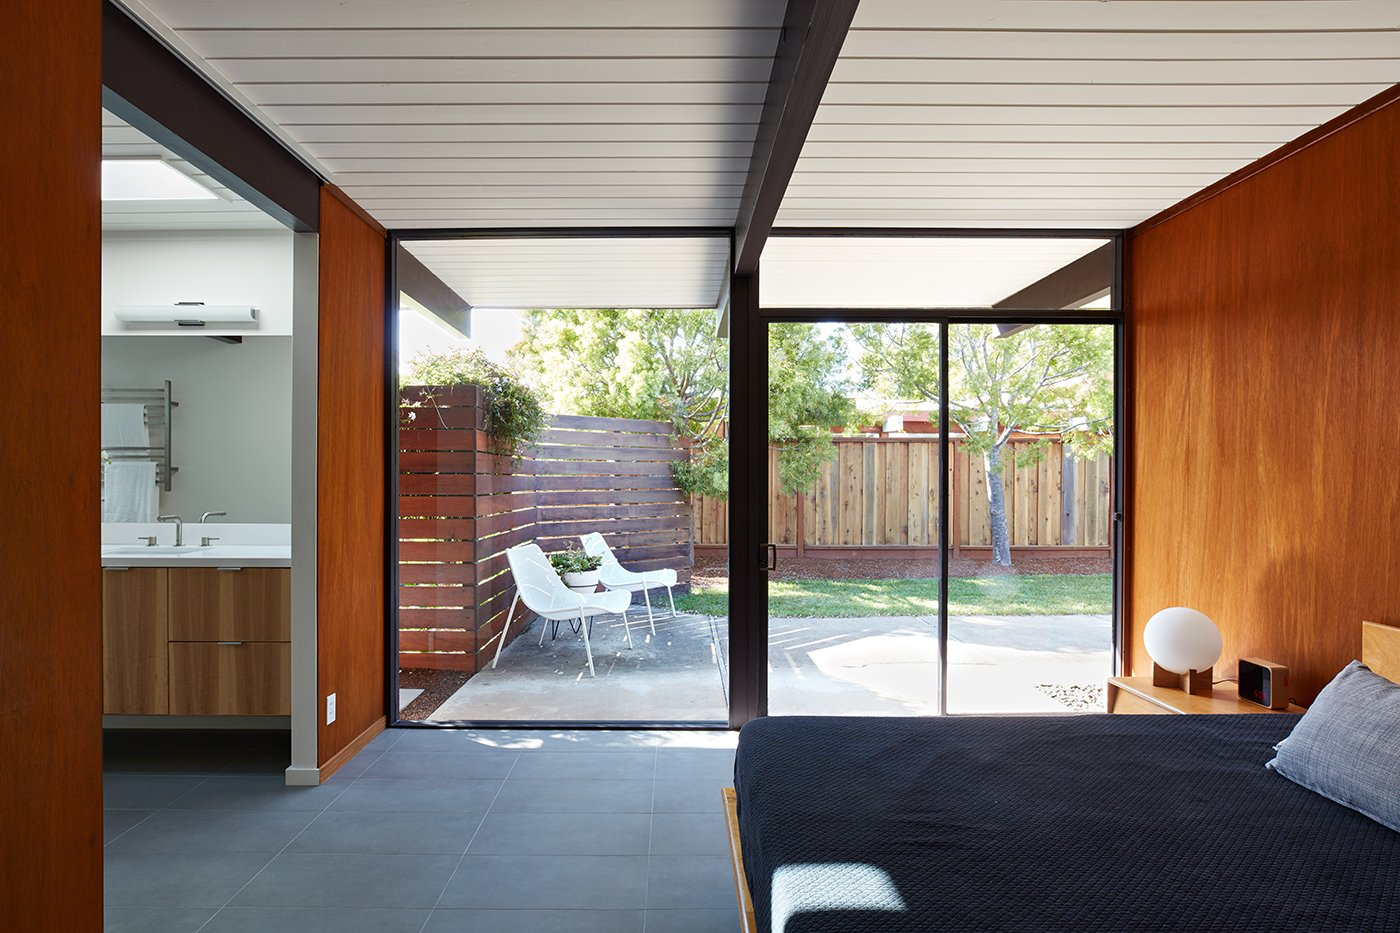 Eichler house in San Mateo Highlands - Klopf architecture - bedroom